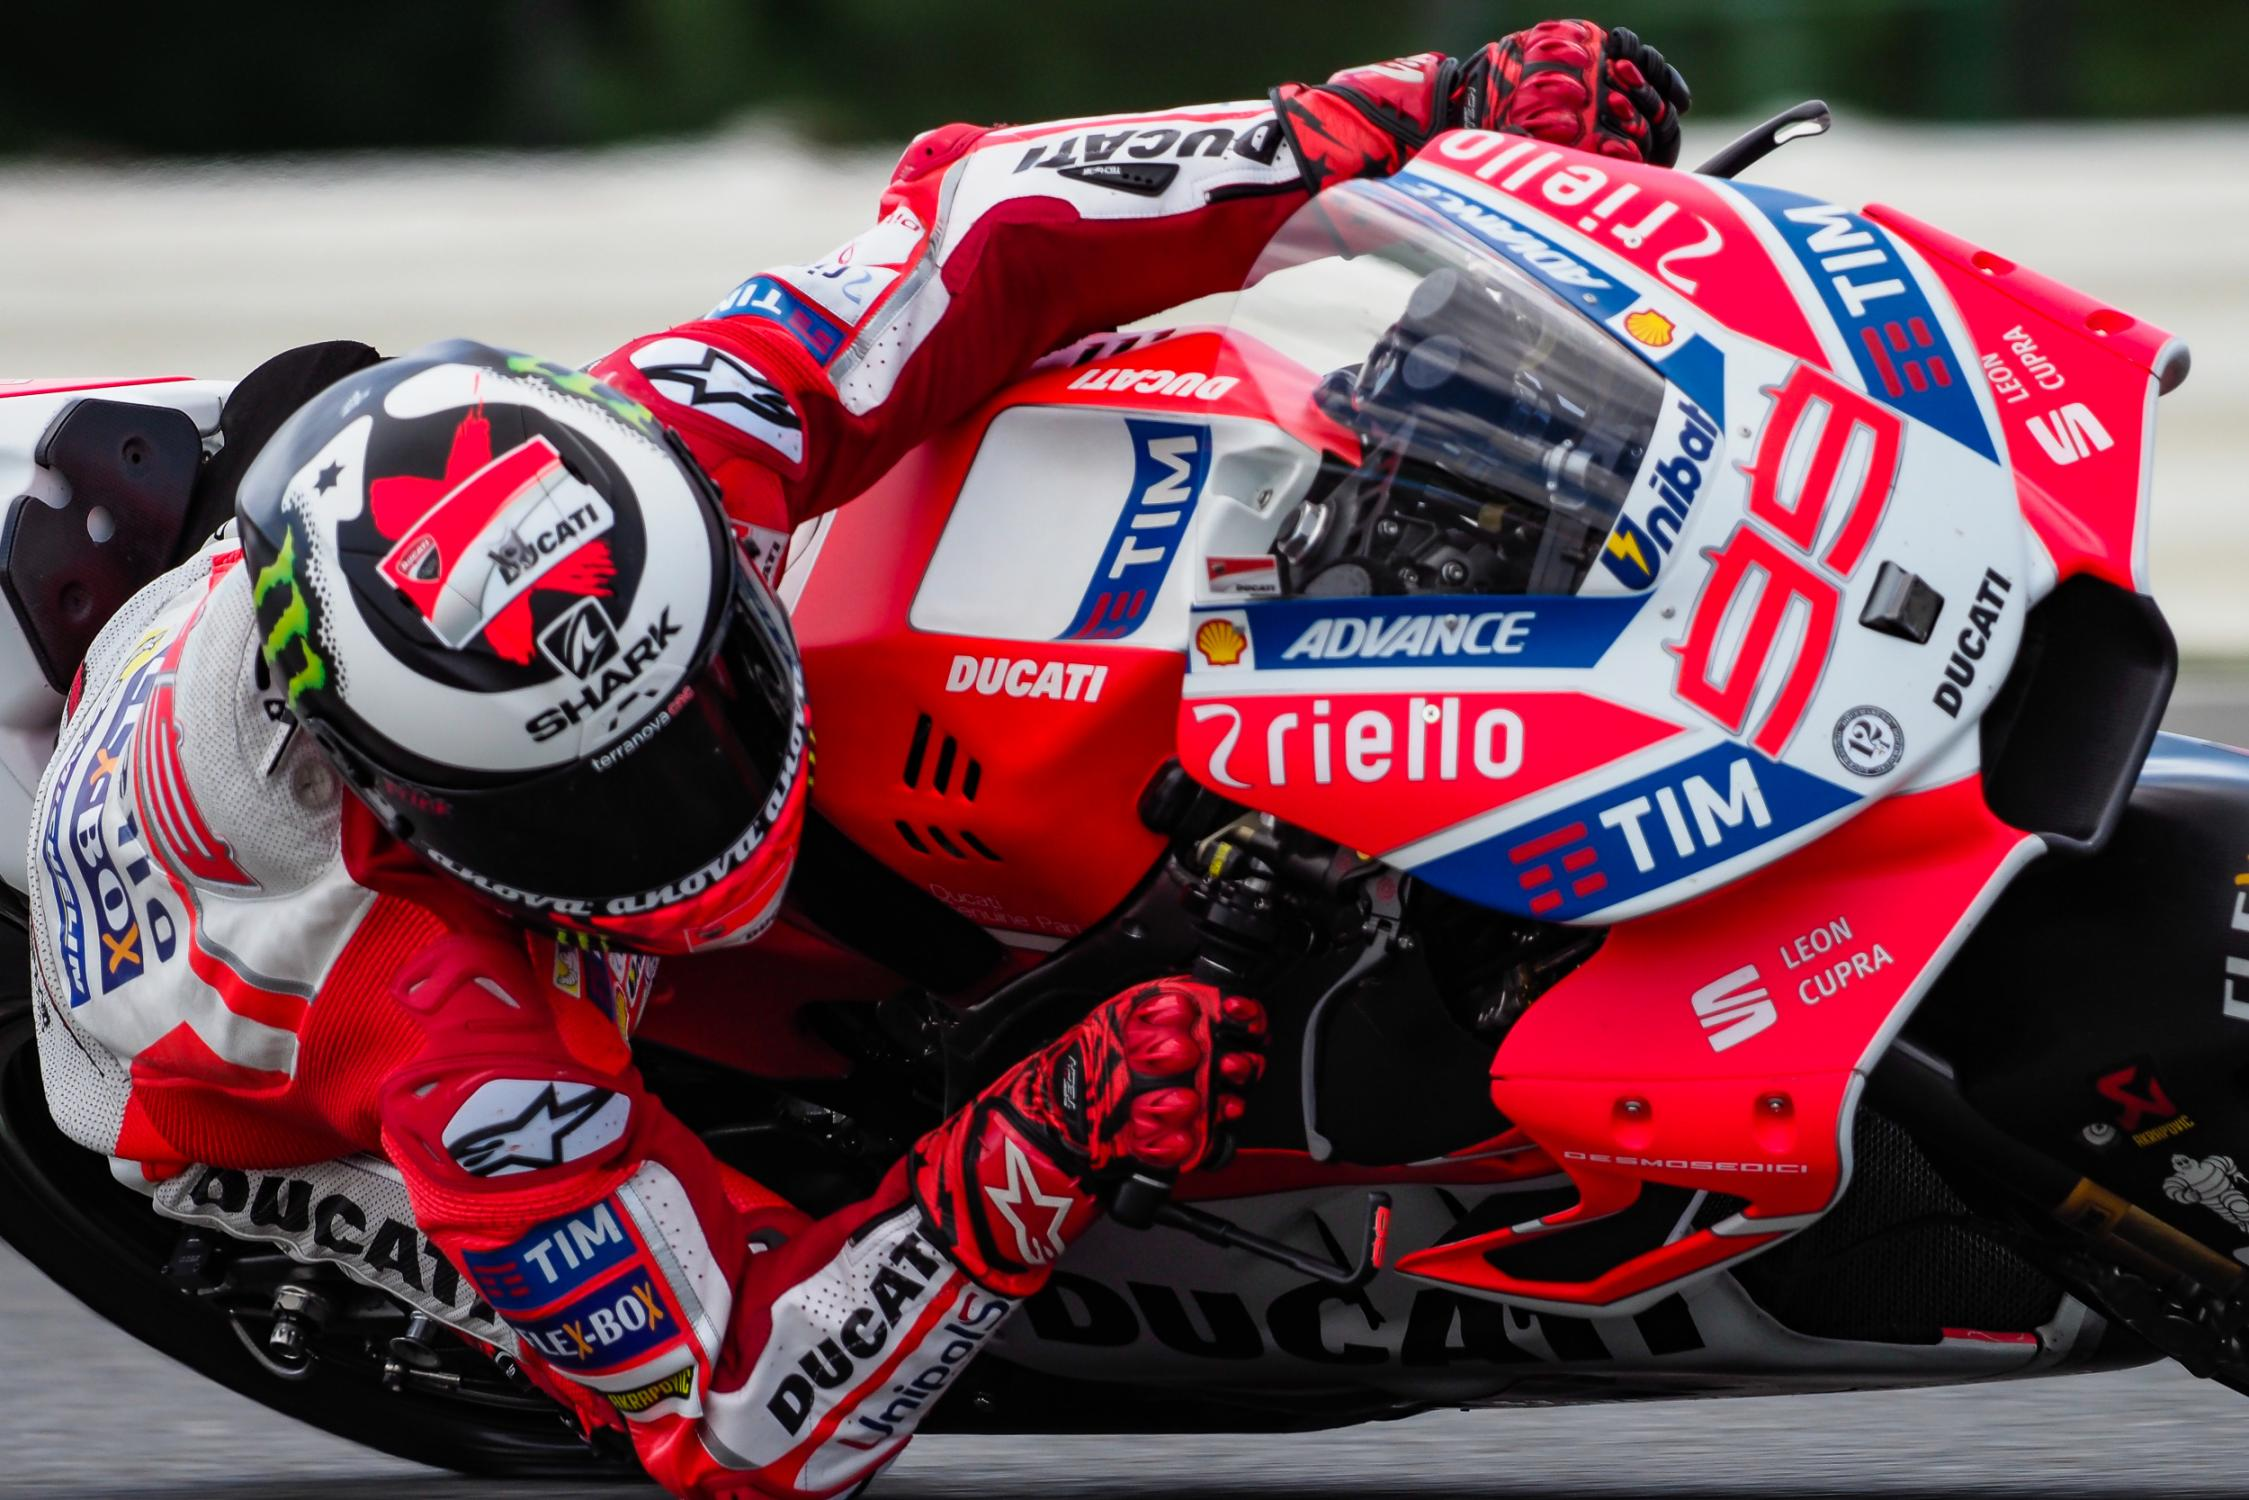 99-jorge-lorenzo-esp_8070351.gallery_full_top_fullscreen.jpg